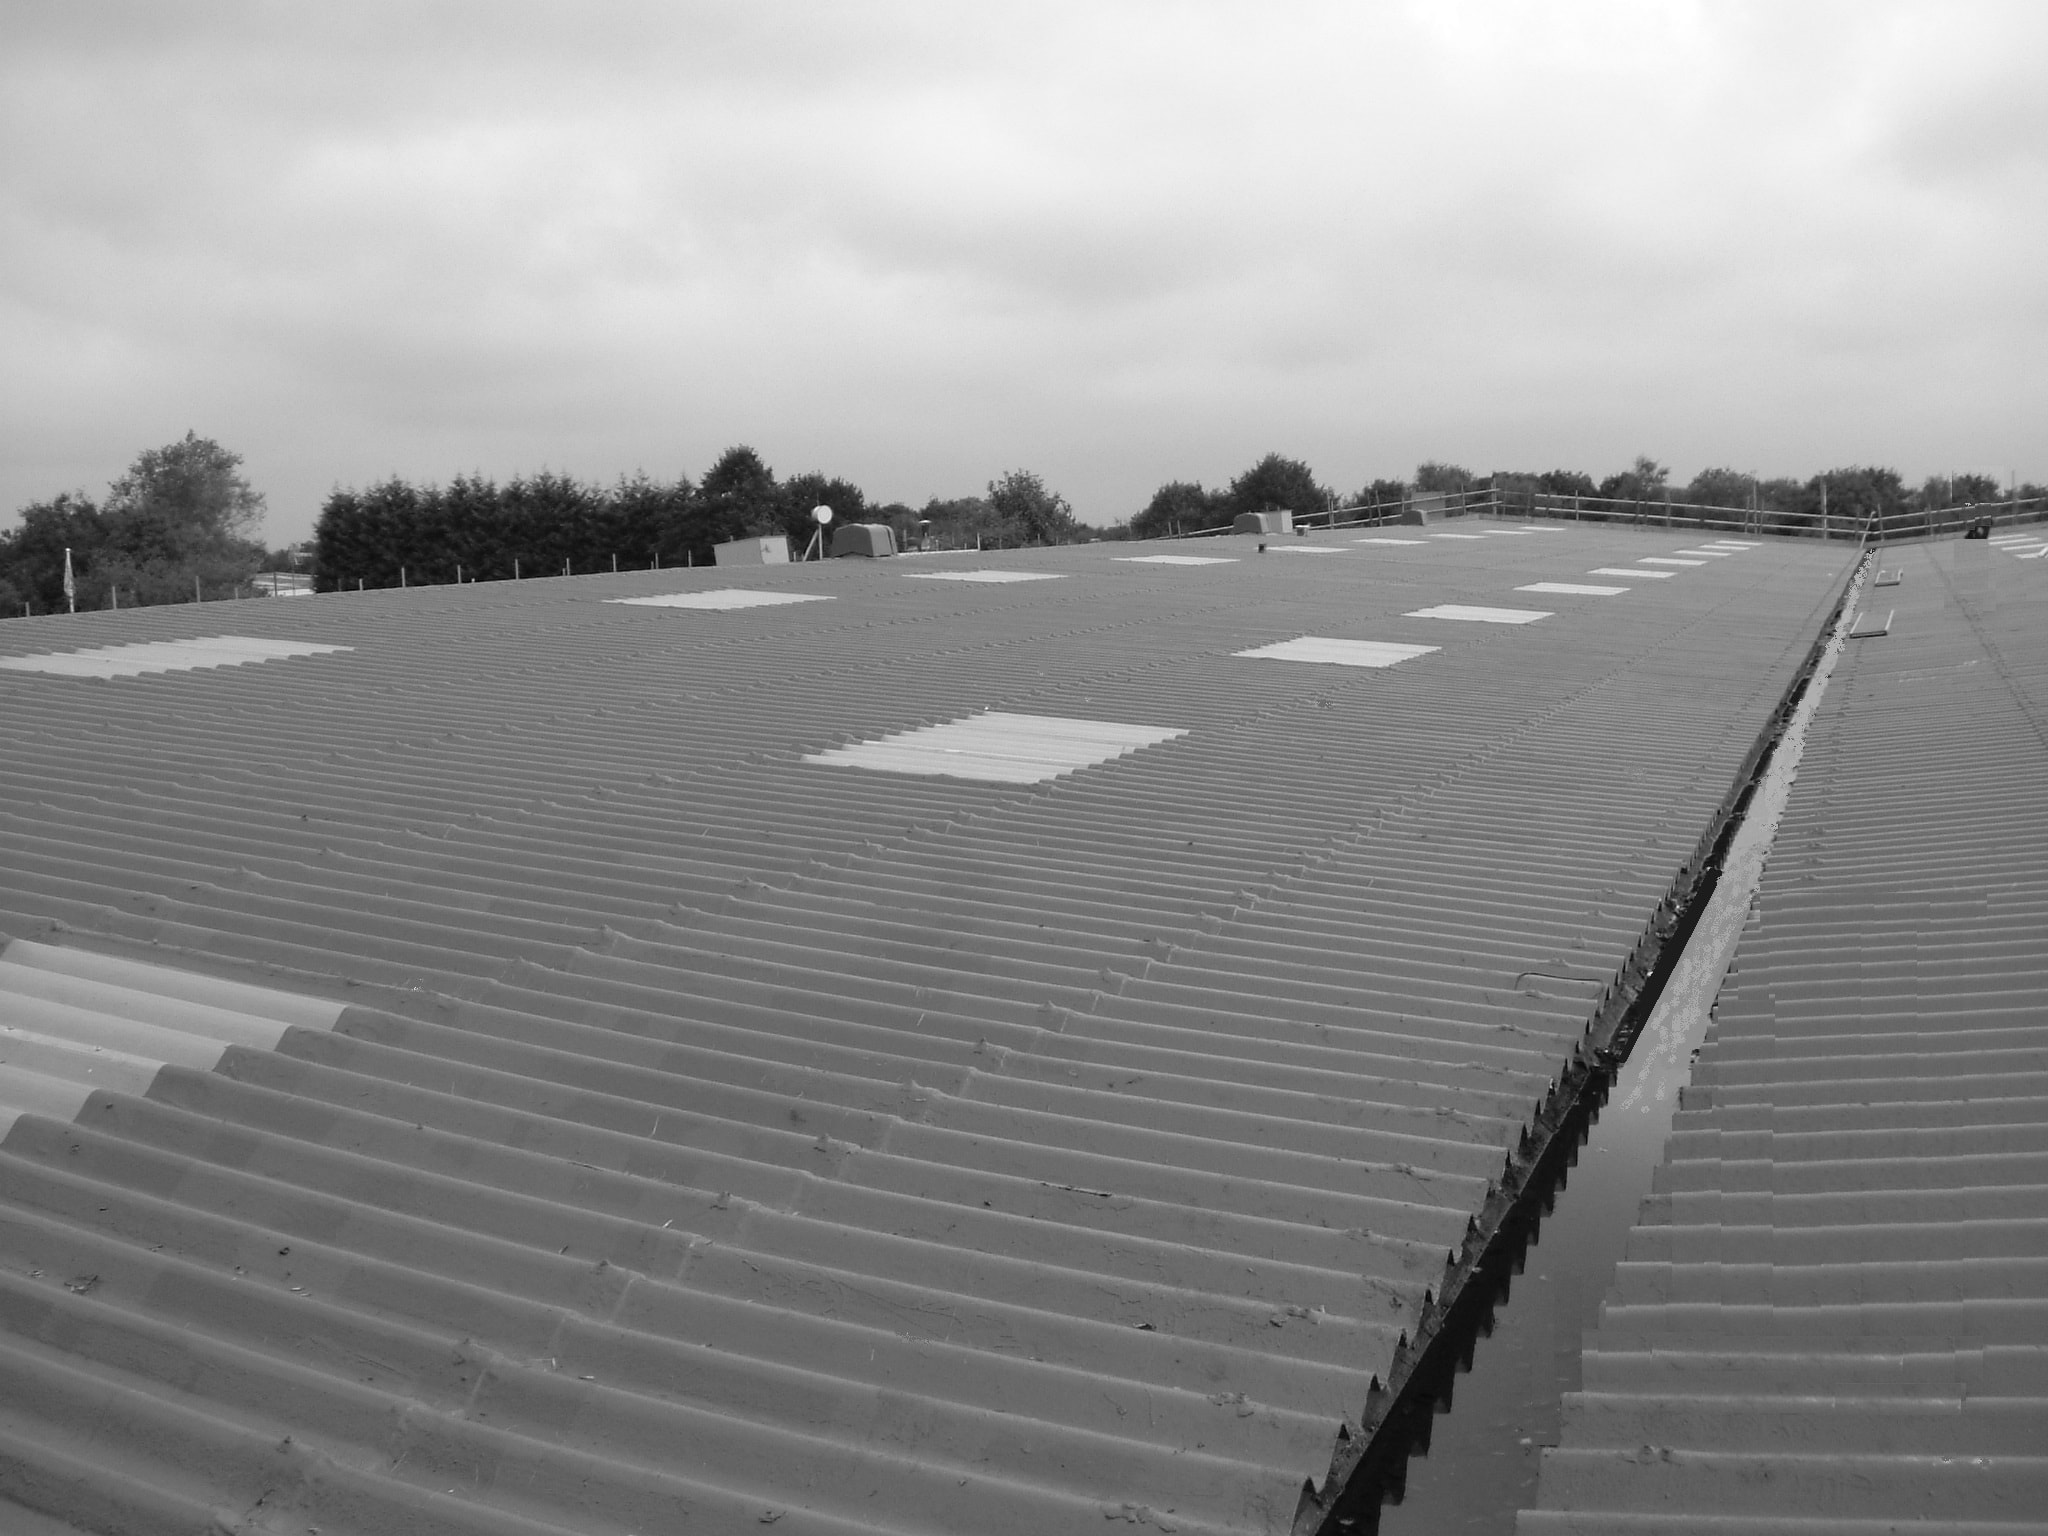 Asbestos Roofing Systems After